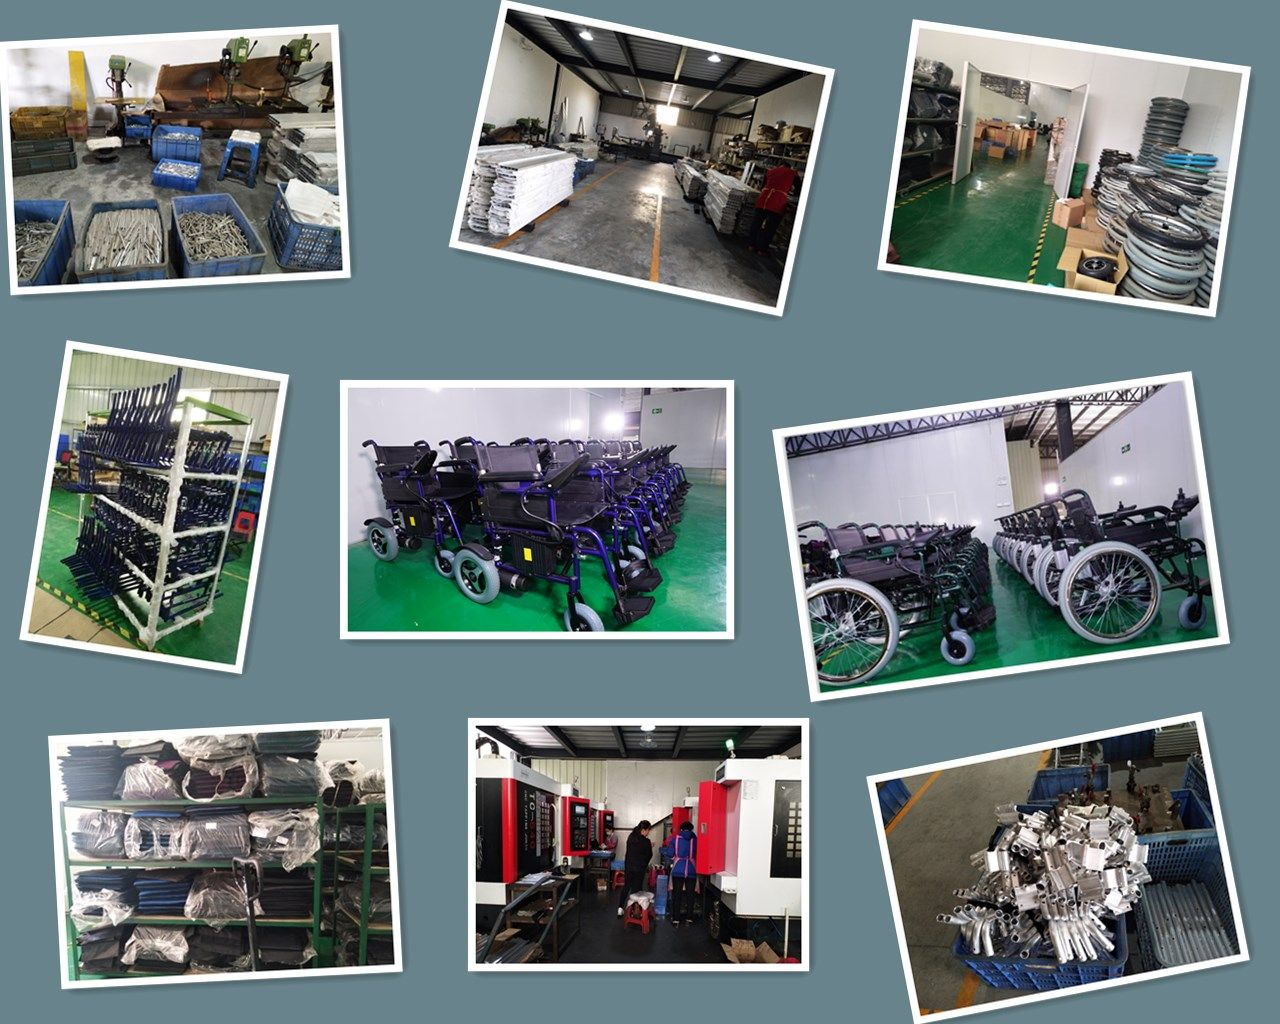 We are China Top Power wheelchair Manufacturer. Over 10